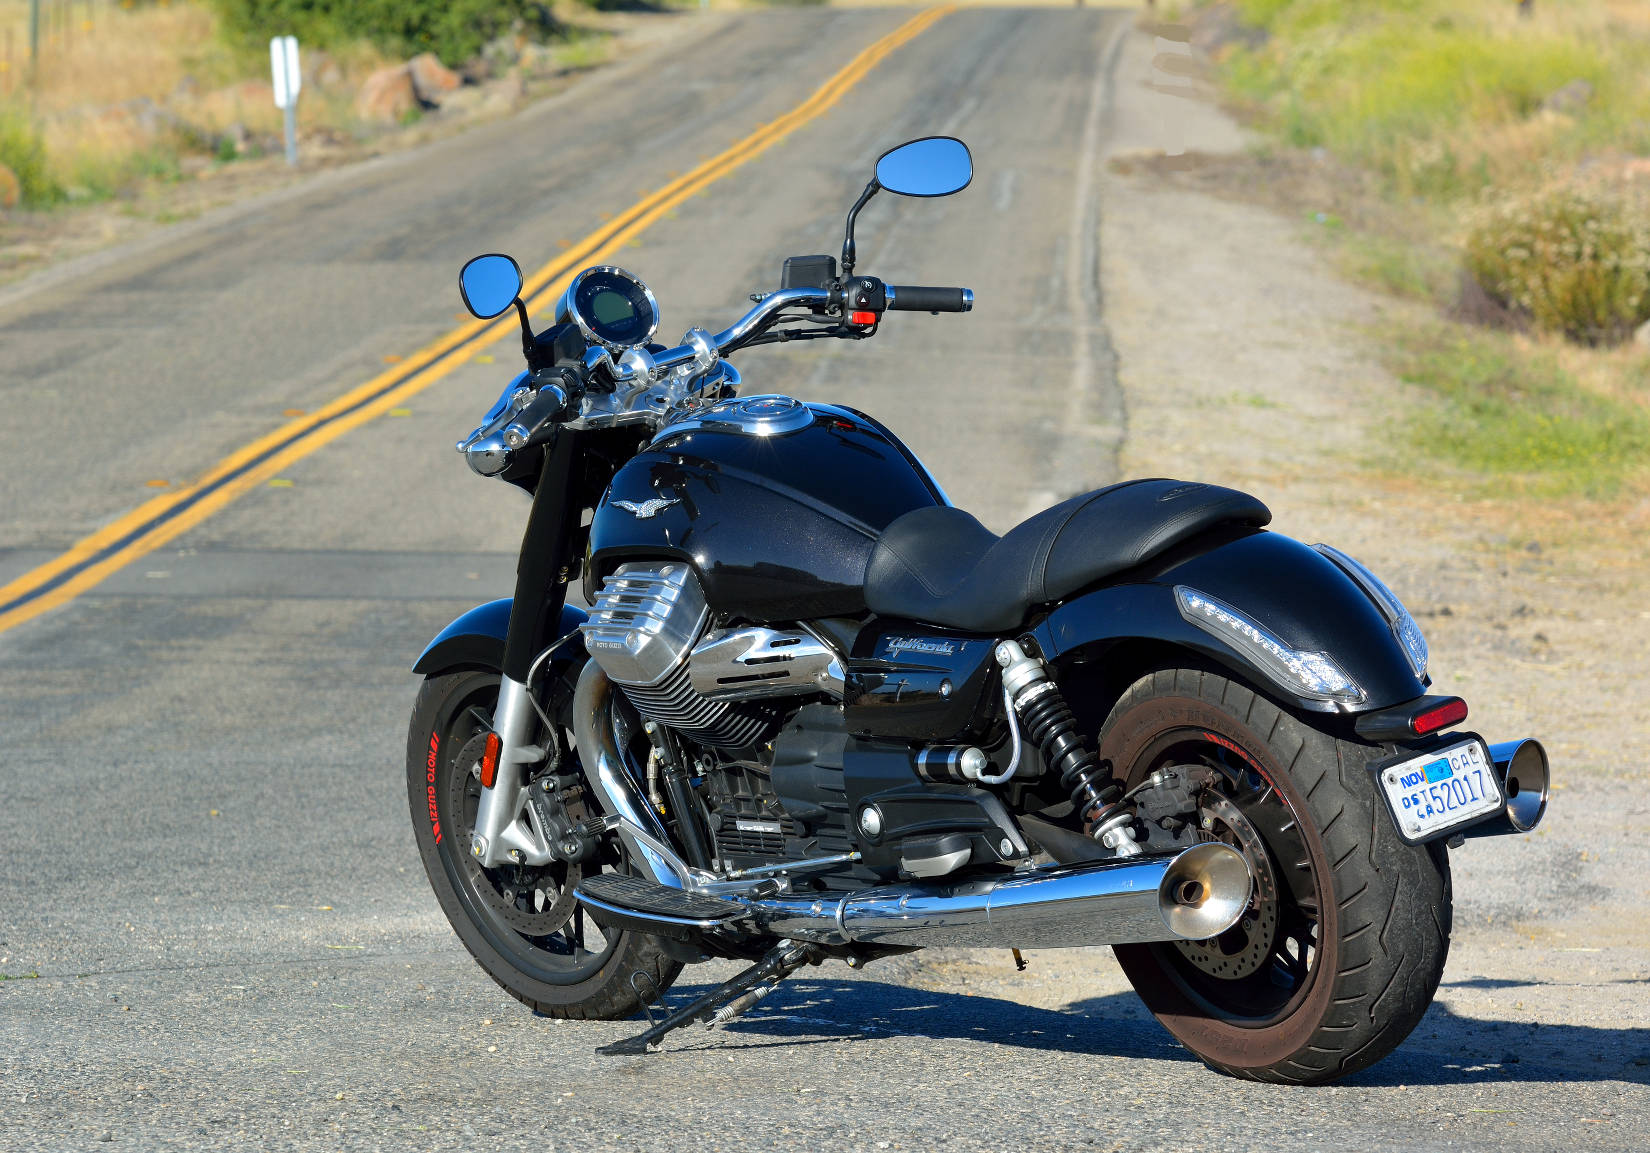 md bike of the year moto guzzi california 1400 custom motorcycle news. Black Bedroom Furniture Sets. Home Design Ideas